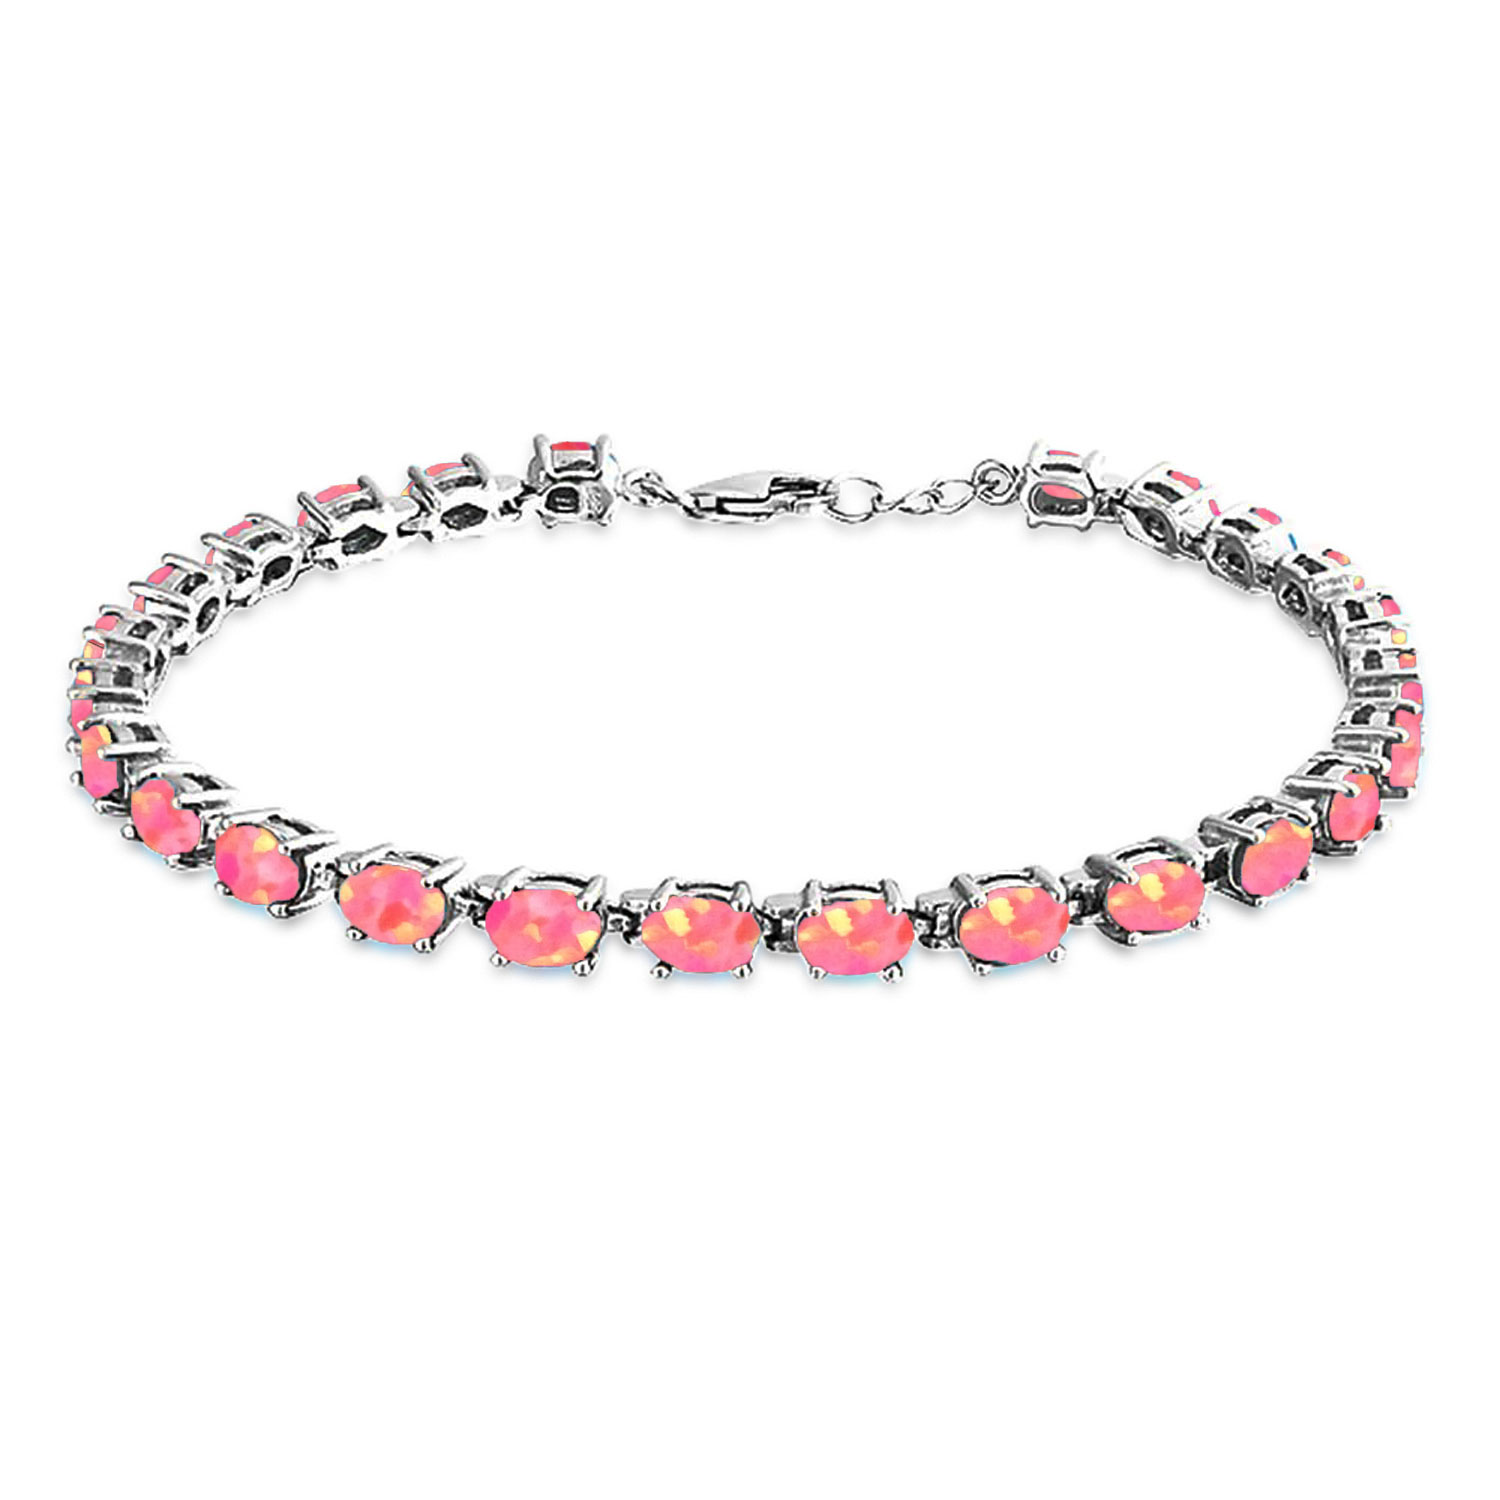 Bling Jewelry 925 Silver Synthetic Pink Opal Oval Tennis Bracelet 7.5in by Bling Jewelry